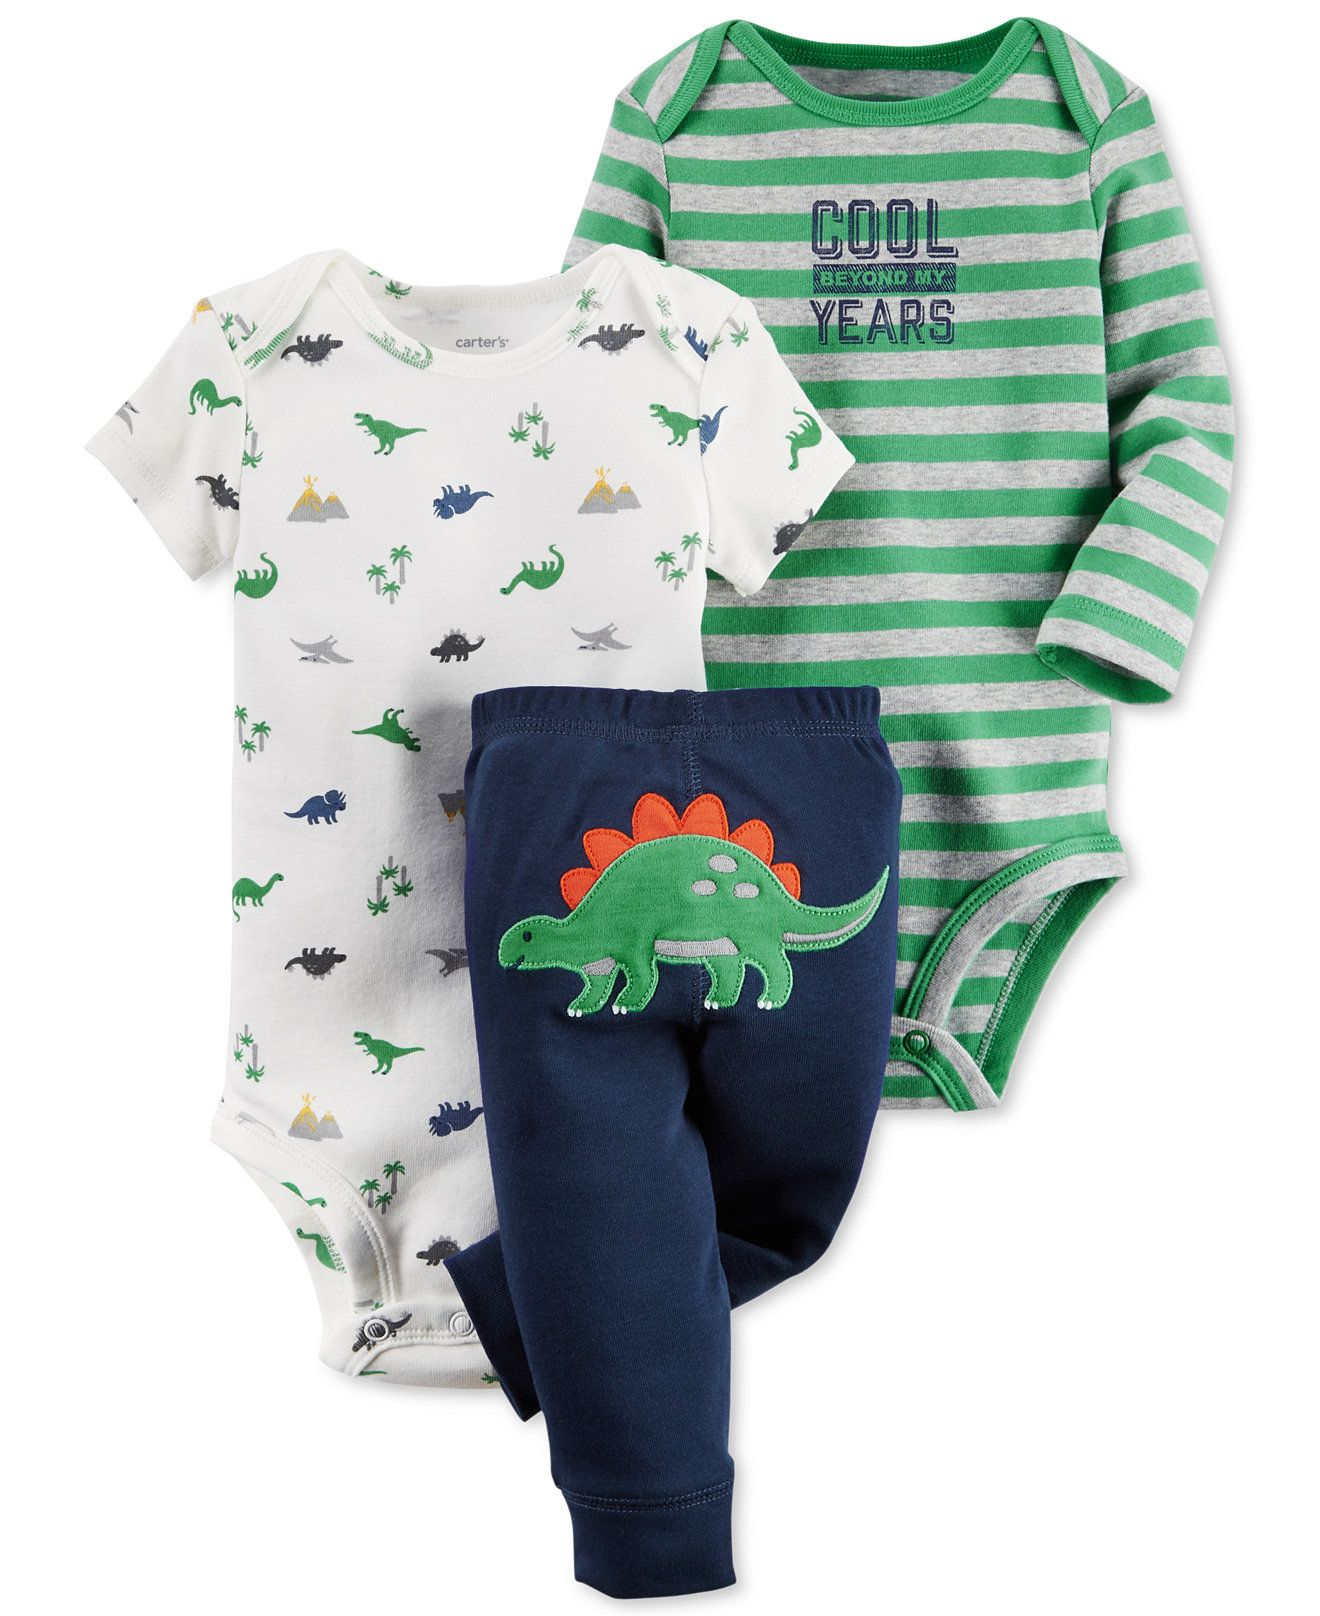 93ac3c23f Carter's Baby Boys' 3-Pc. Dinosaurs Bodysuits & Pants Set - Sets & Outfits  - Kids & Baby - Macy's